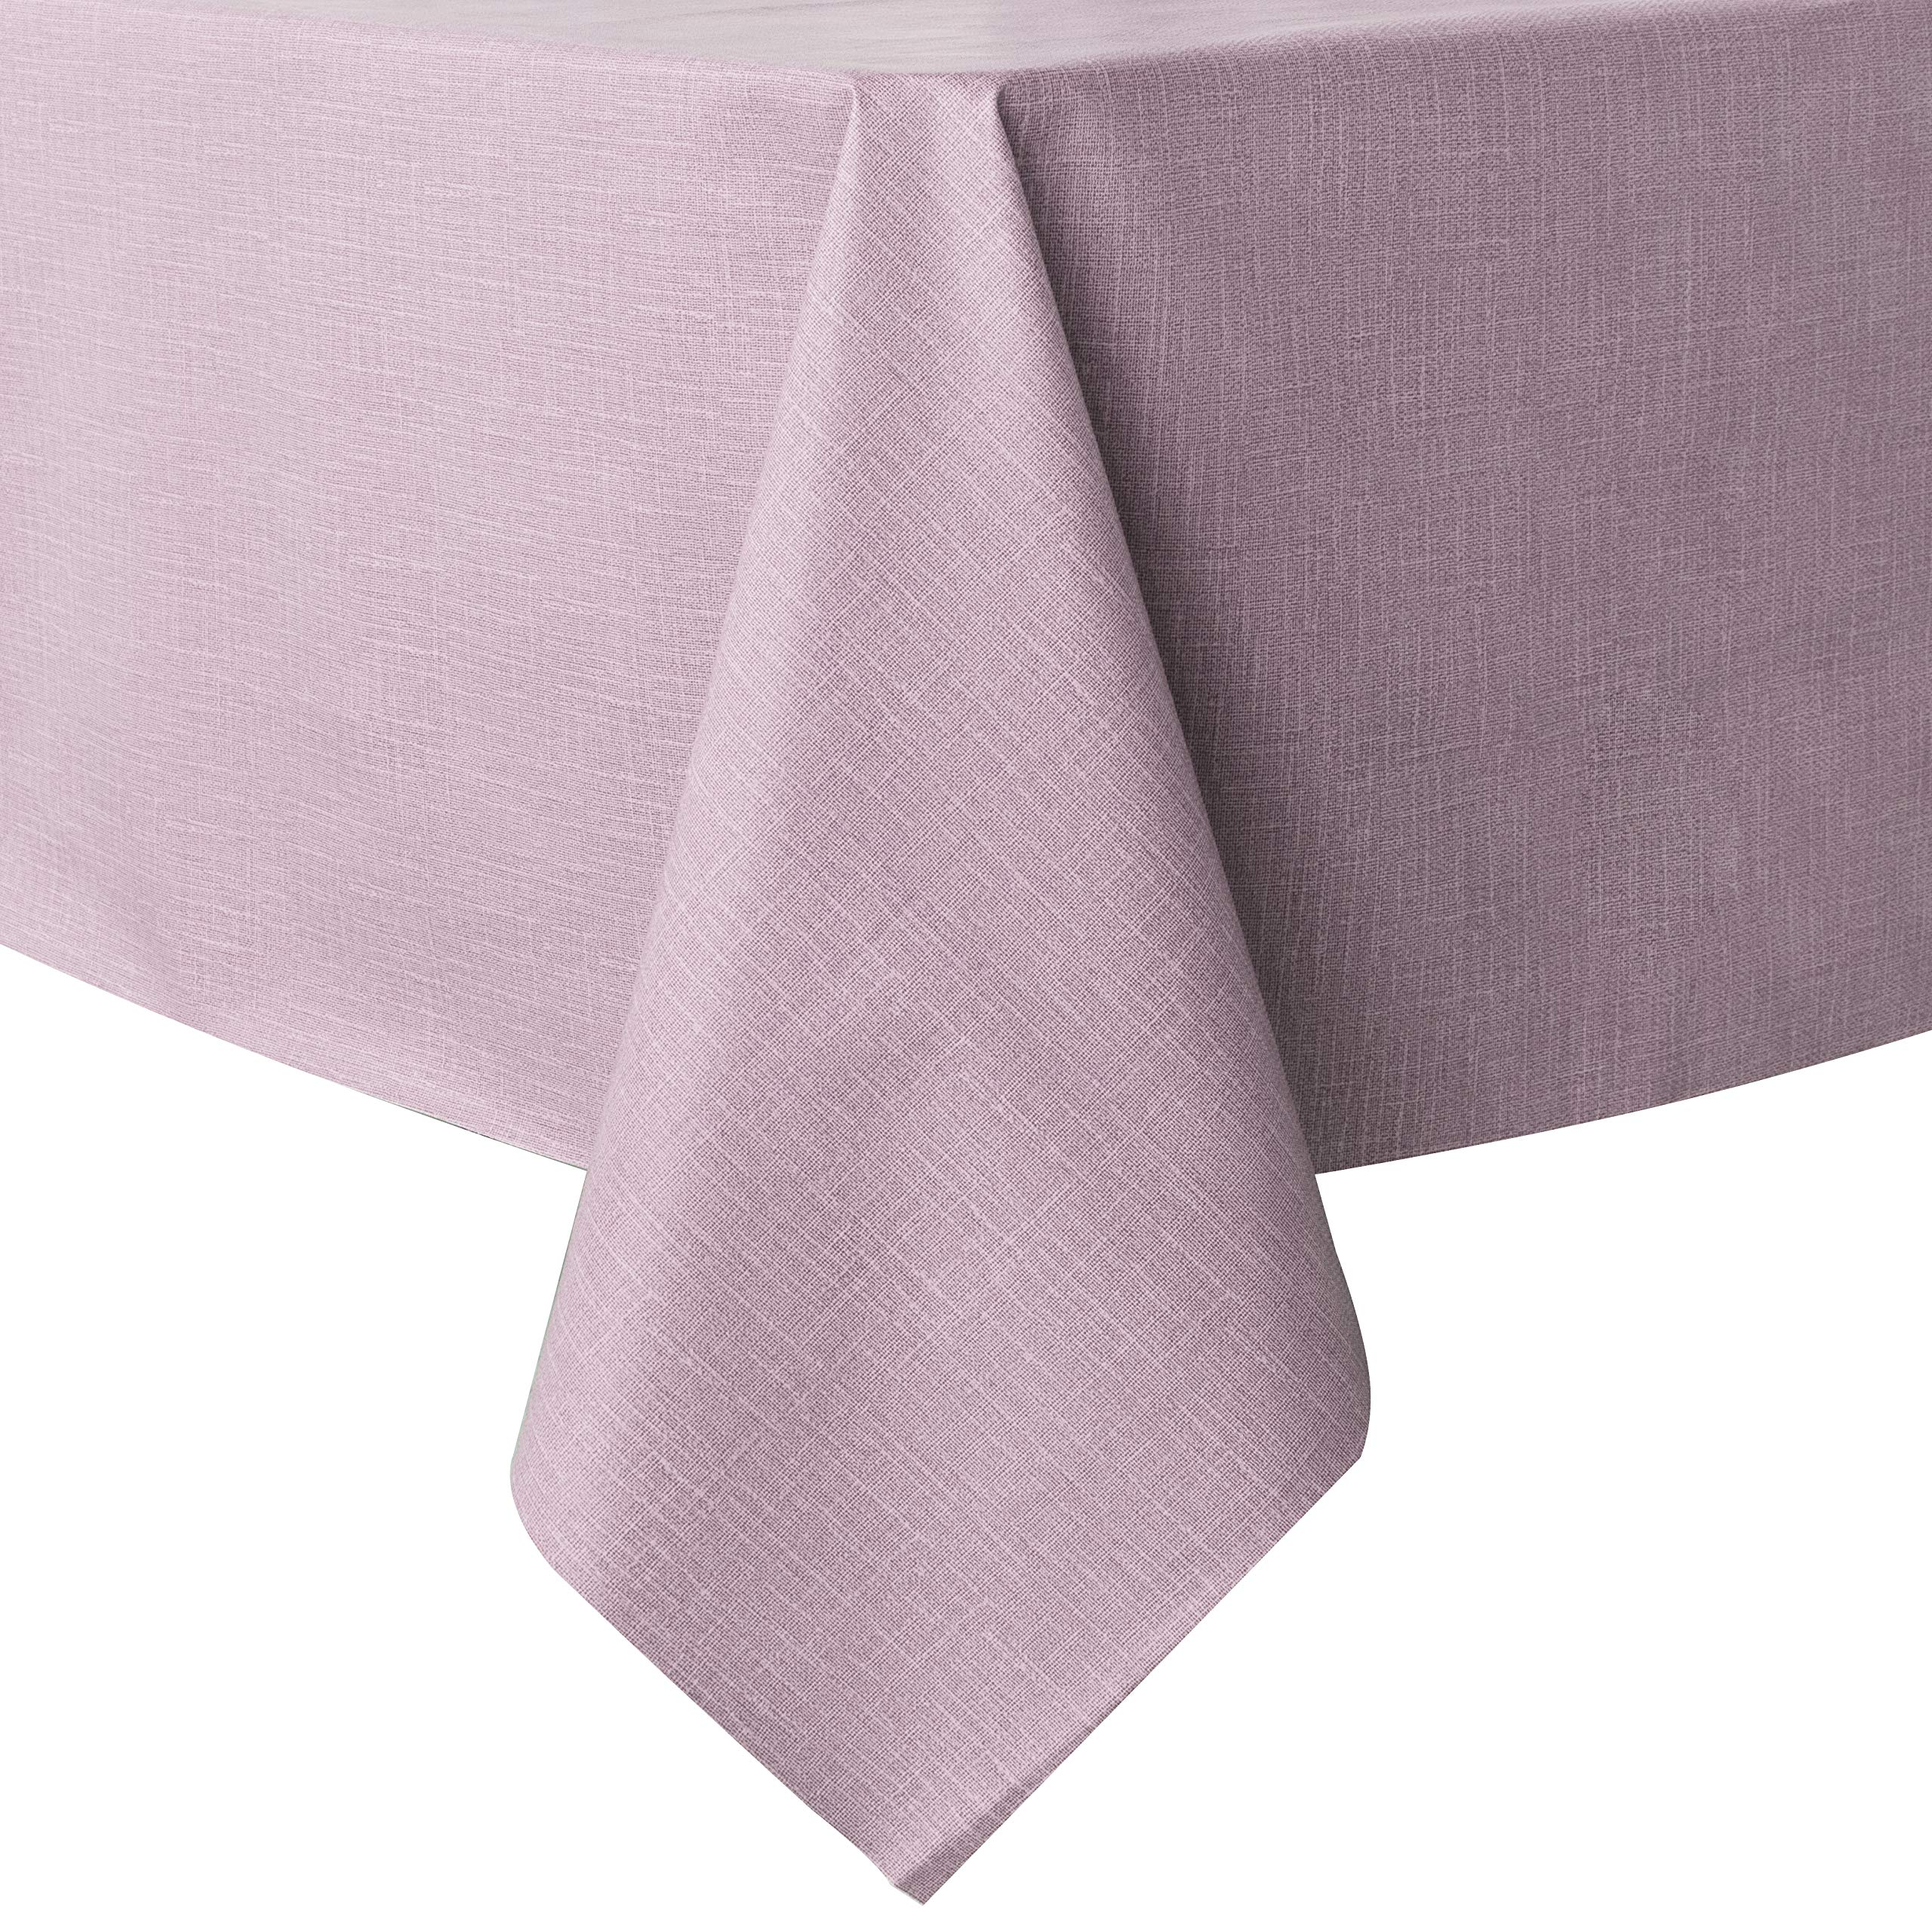 sancua 100% Waterproof Rectangle PVC Tablecloth - 52 x 70 Inch - Oil Proof Spill Proof Vinyl Table Cloth, Wipe Clean Table Cover for Dining Table, Buffet Parties and Camping, Pink